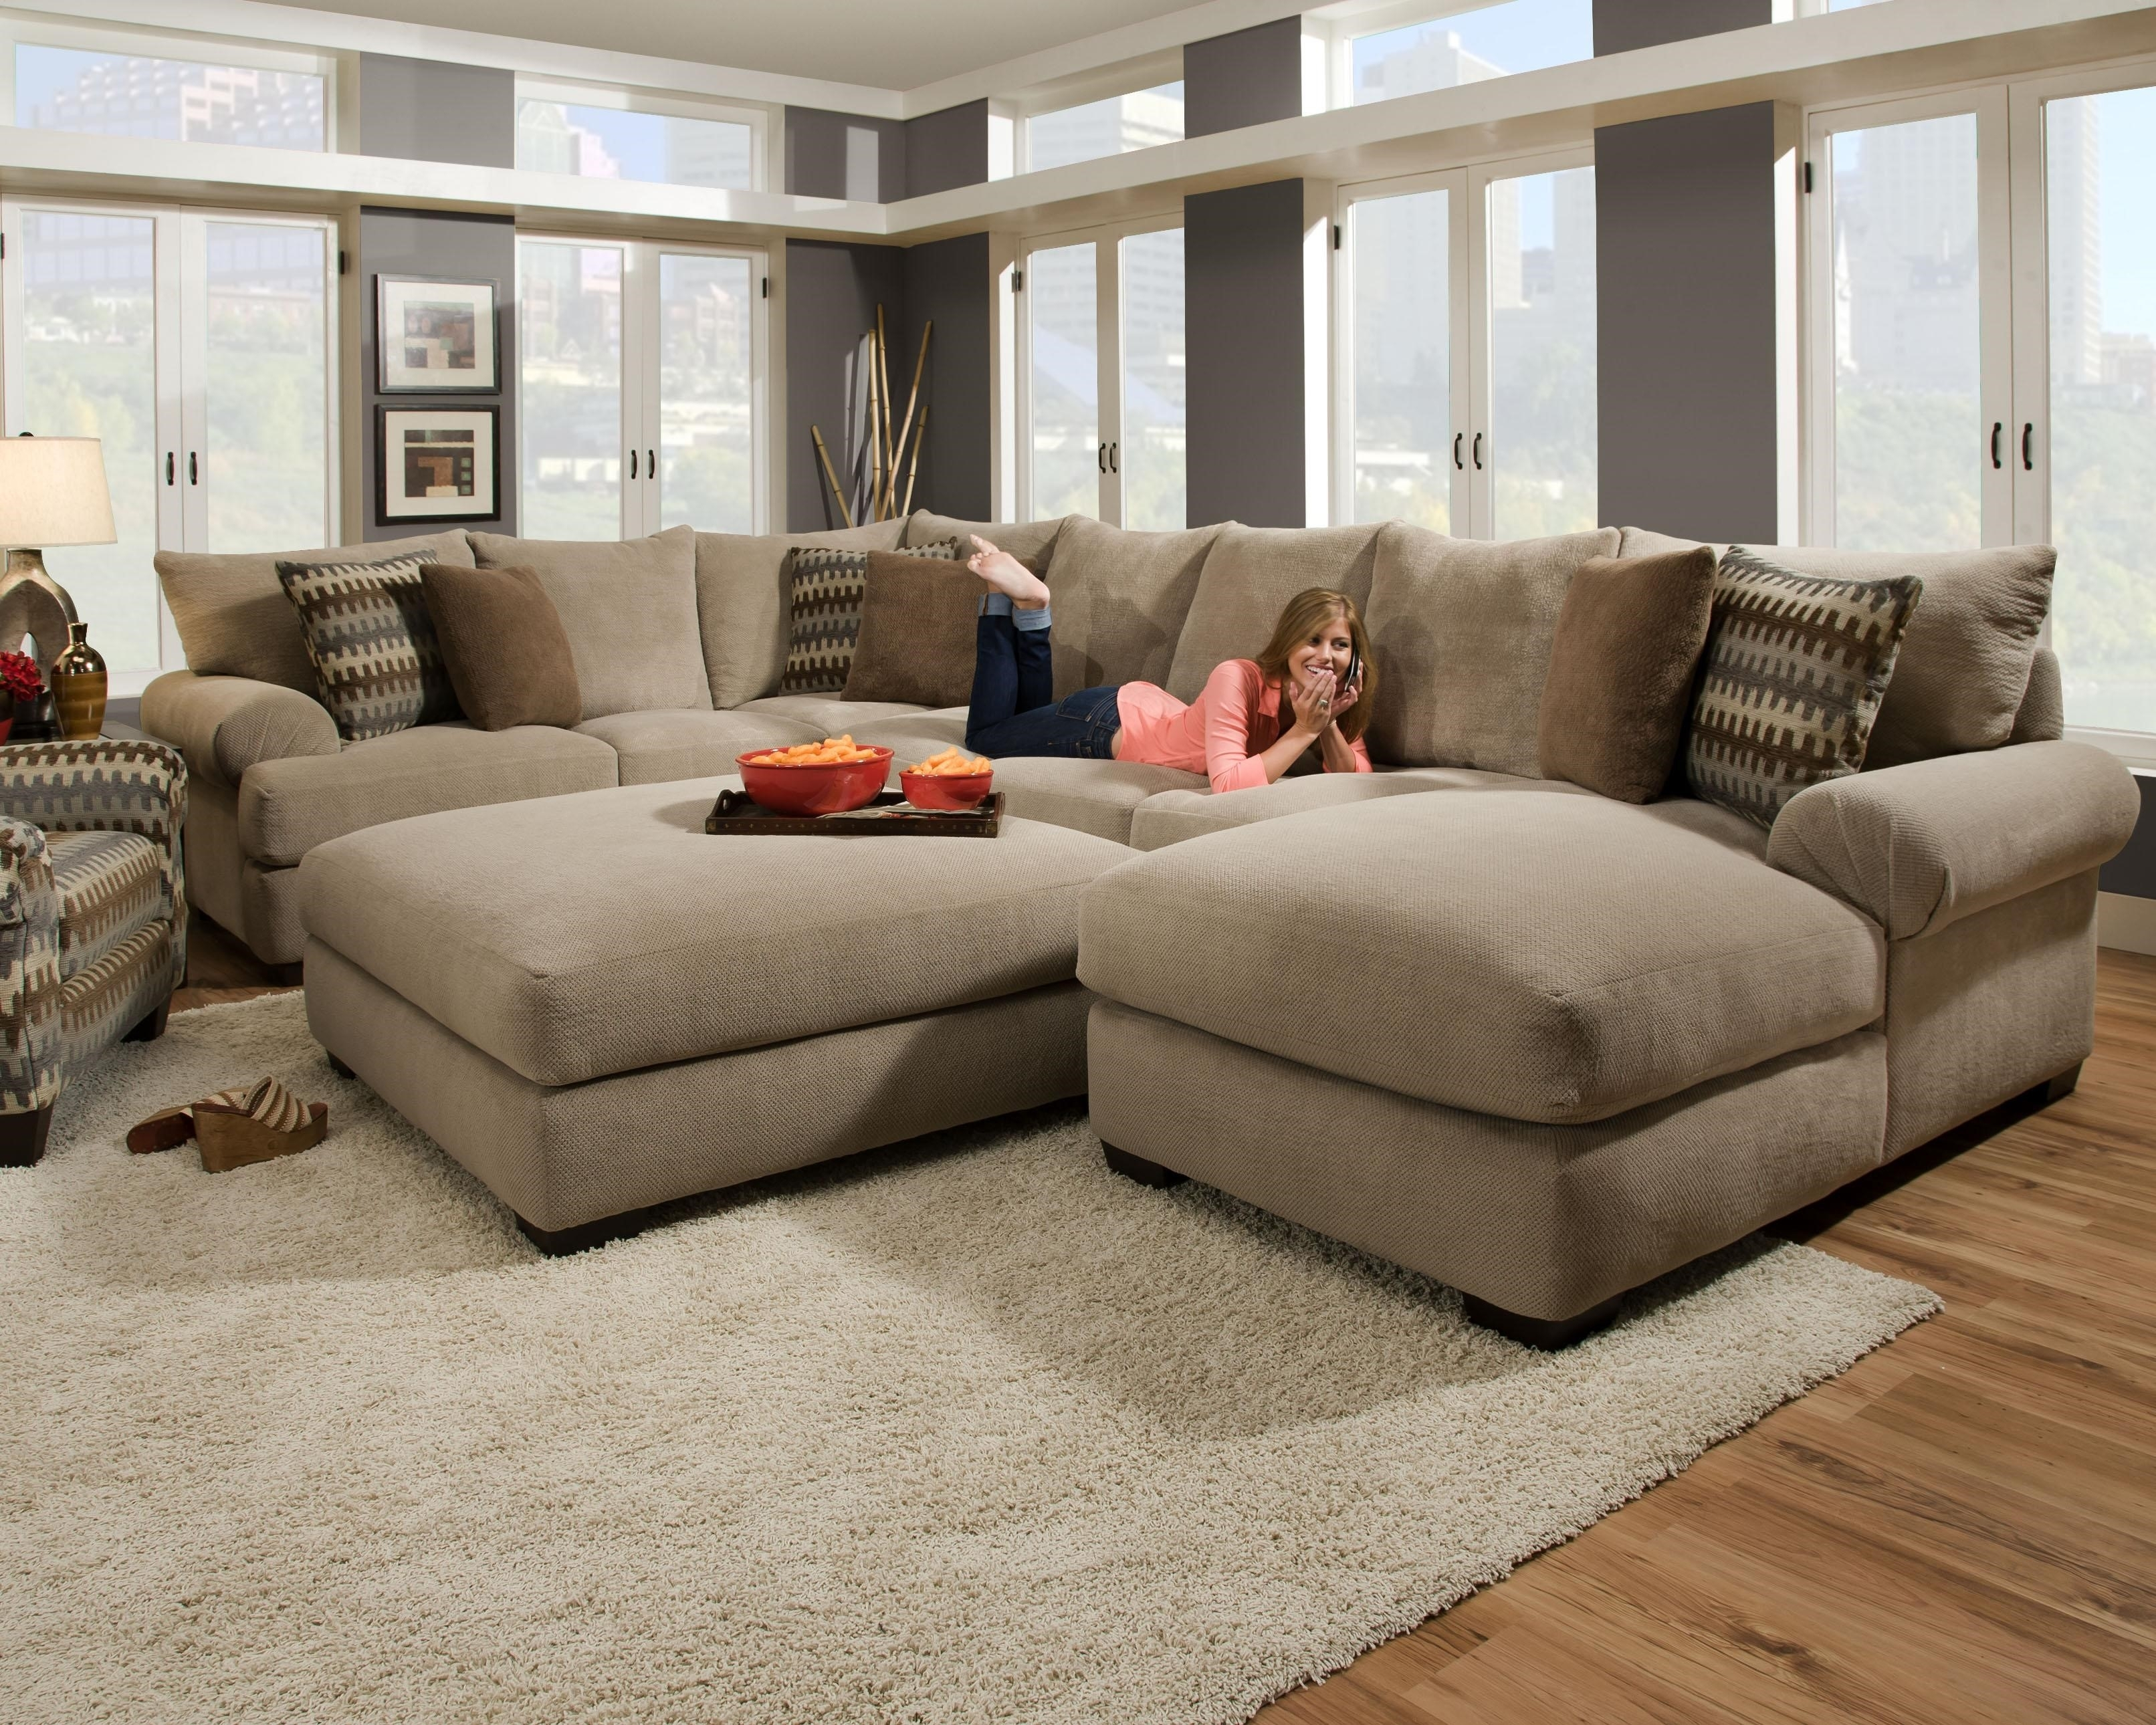 Cheap Sectional Sofas Charlotte Nc | Functionalities With Sectional Sofas At Charlotte Nc (Image 3 of 10)